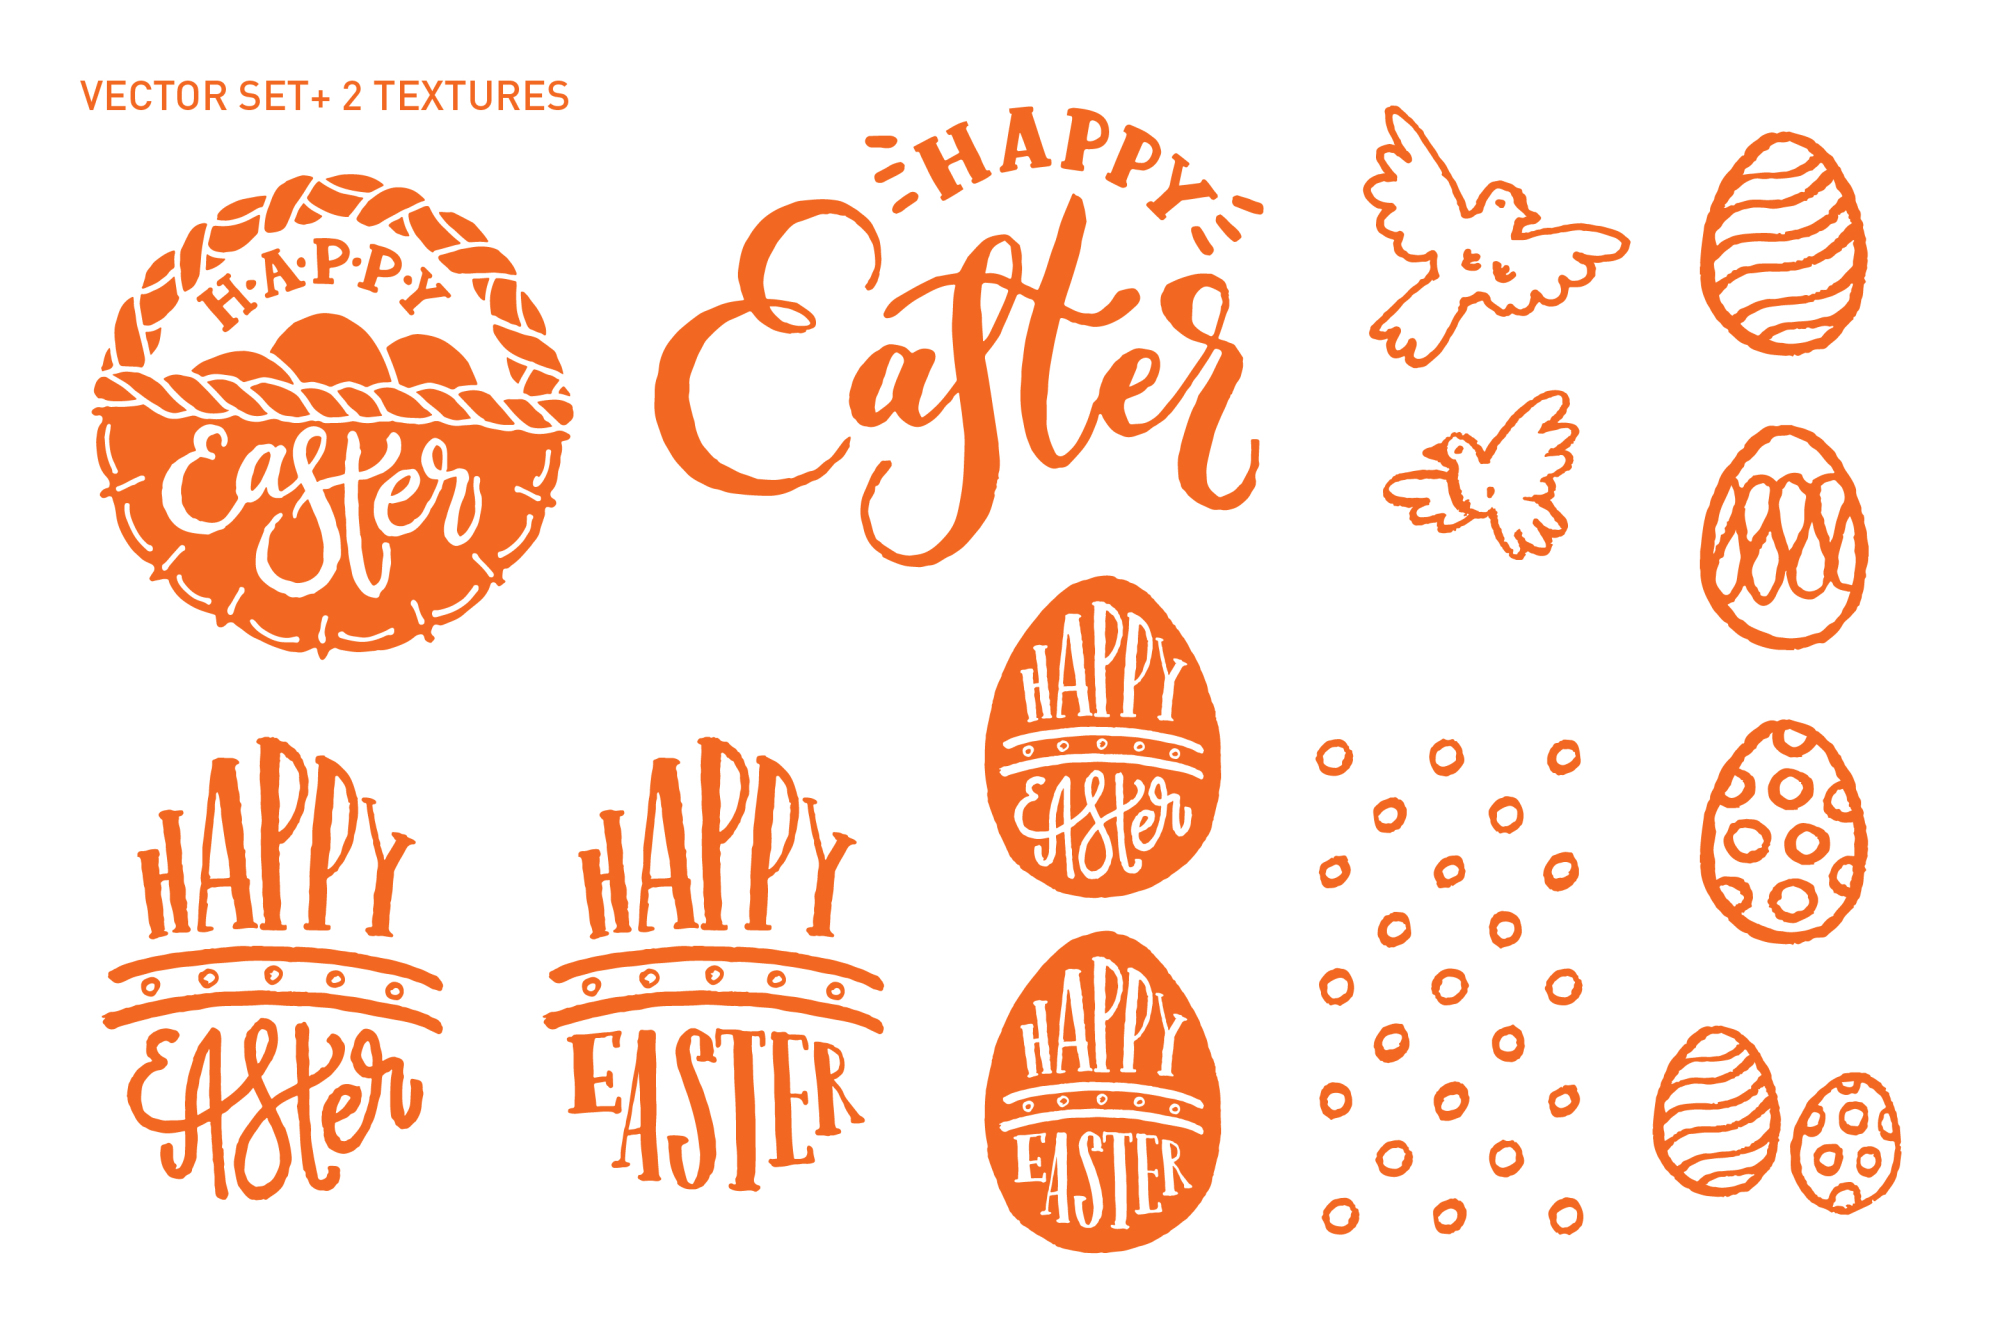 happy easter vector elements and water design bundles rh designbundles net easter vector free download easter vector graphics free download